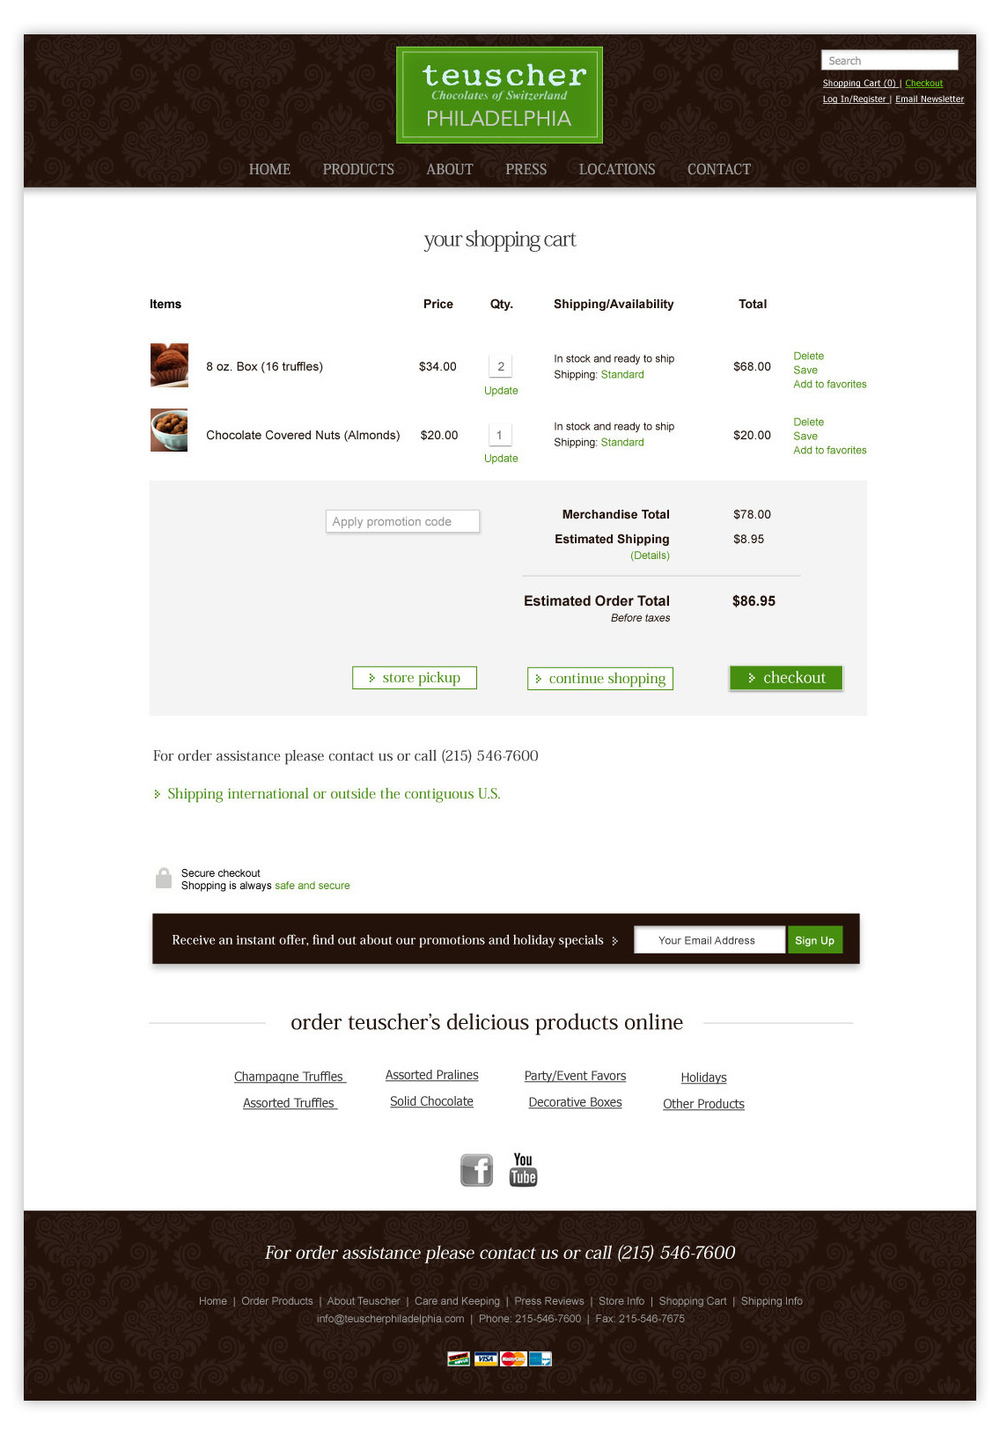 Teuscher_0004_Checkout---My-Cart.jpg